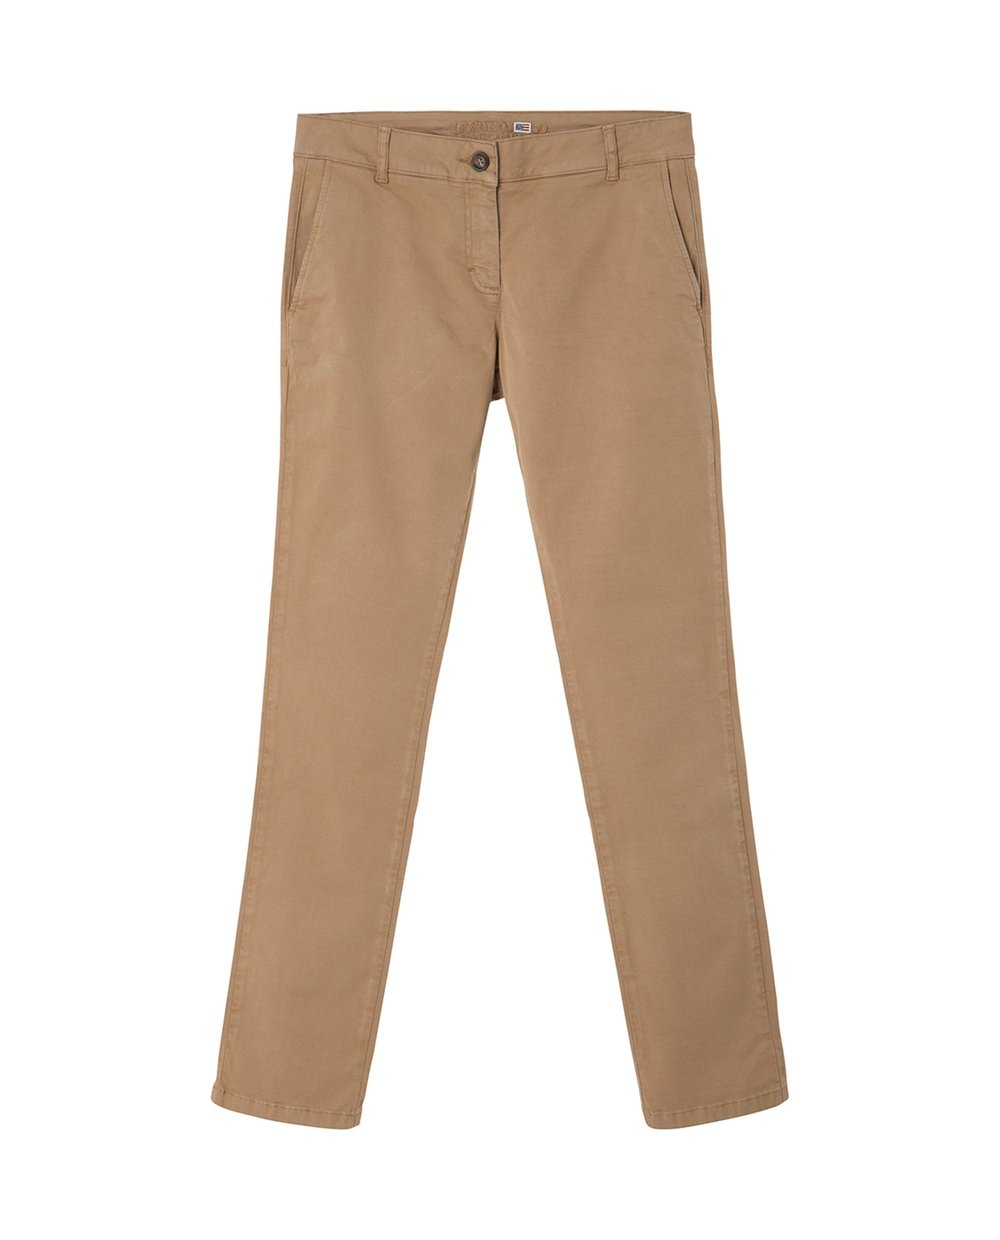 lexington pants.jpg